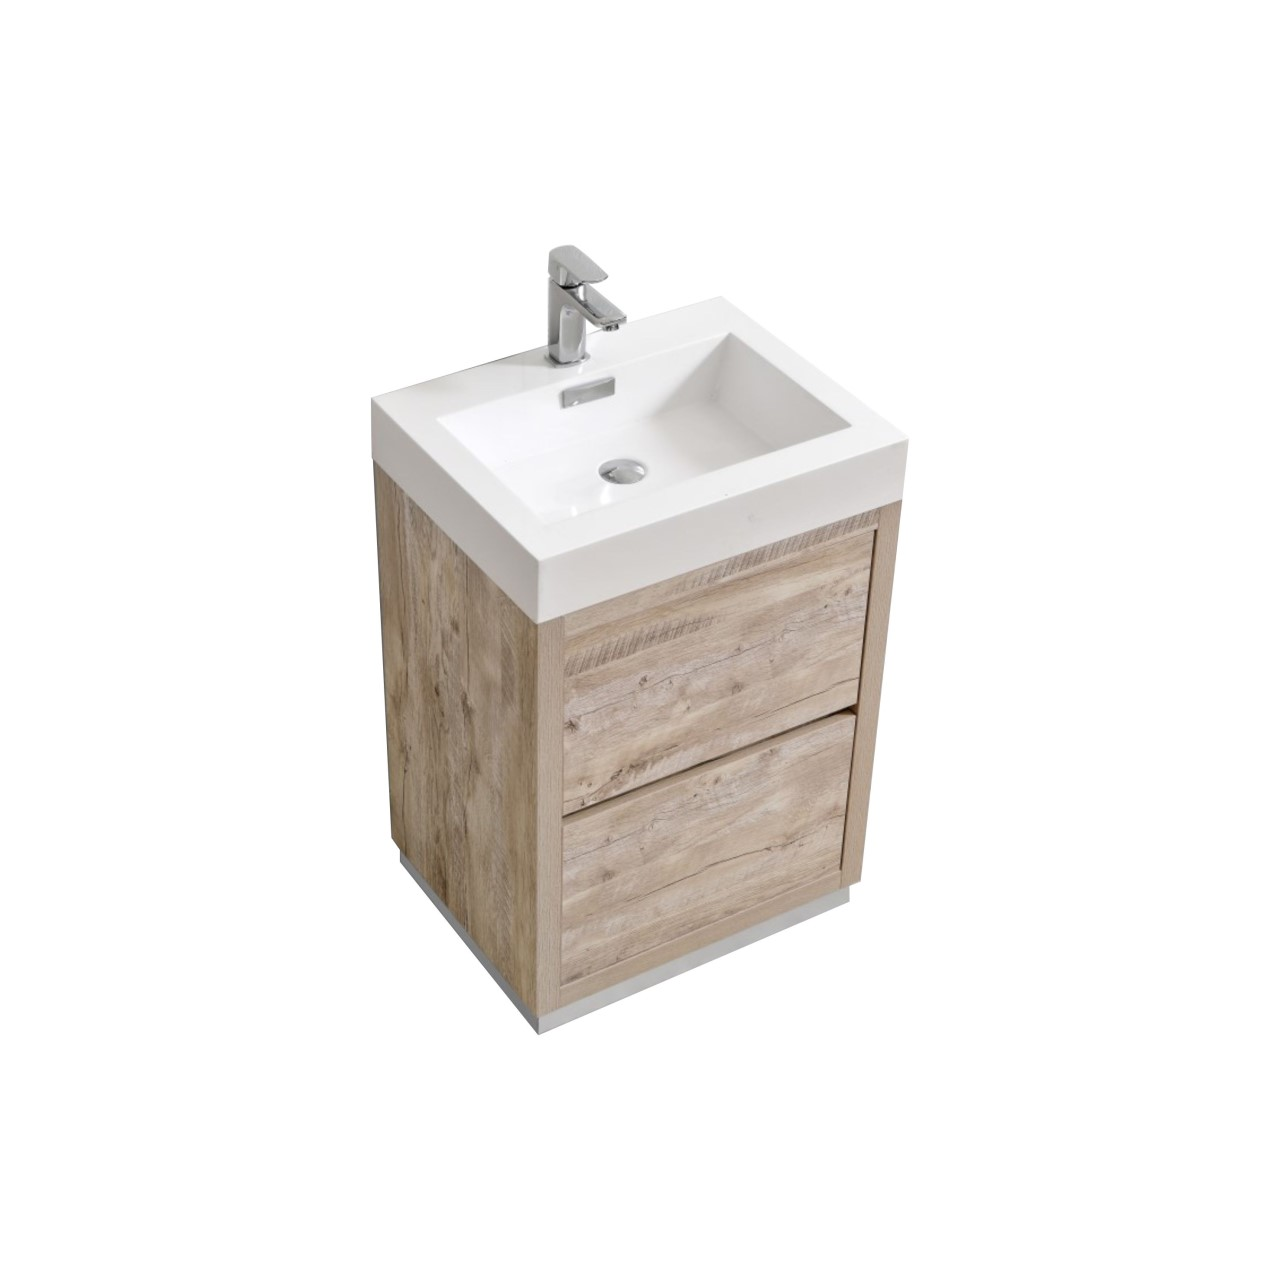 "Modern Lux 24"" Nature Wood Free Standing Modern Bathroom Vanity"